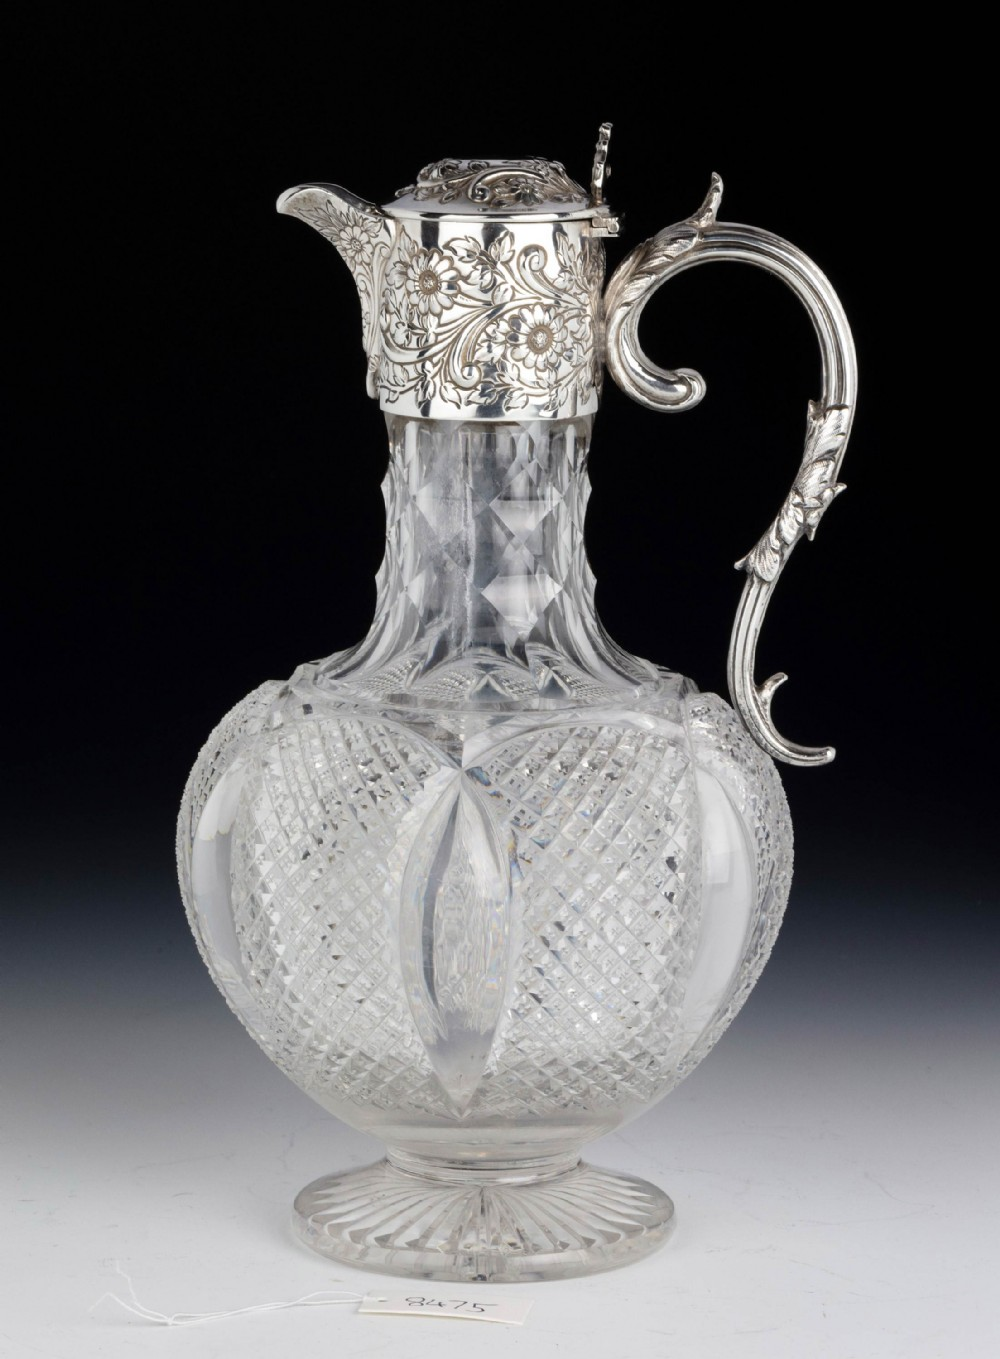 a beautifully presented late 19th century claret jug